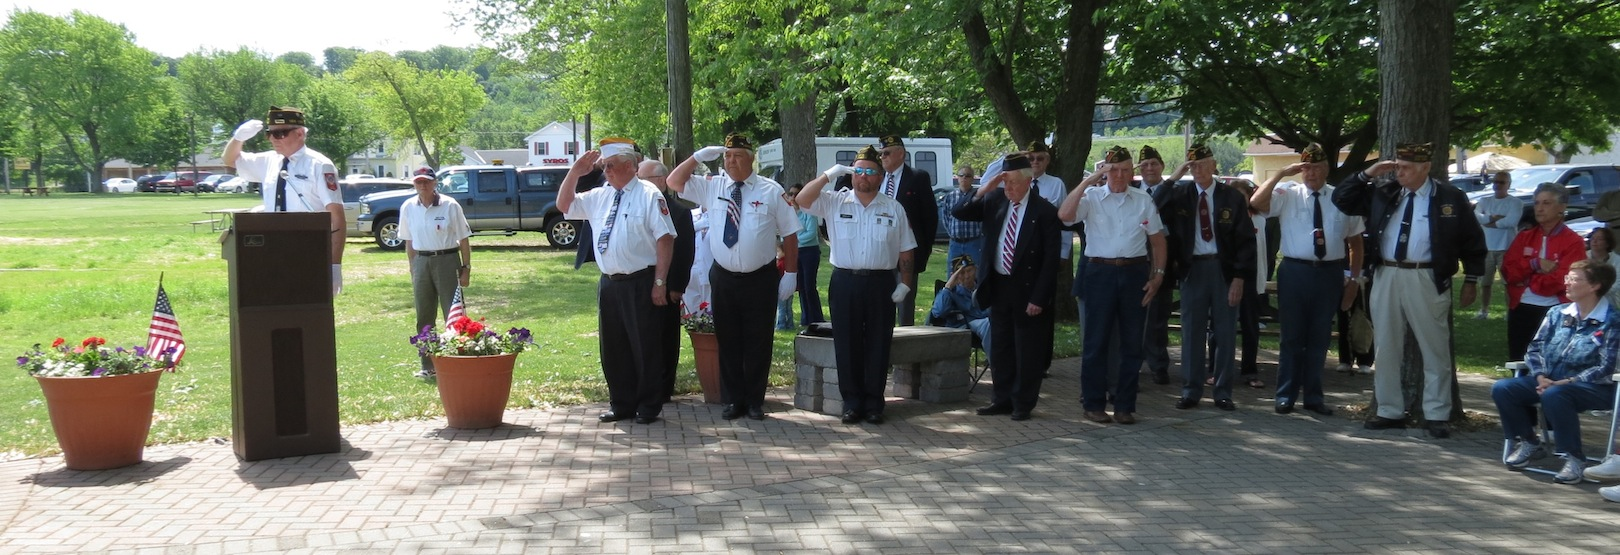 Memorial Day 2013 in the Village of Lewiston. (file photo)